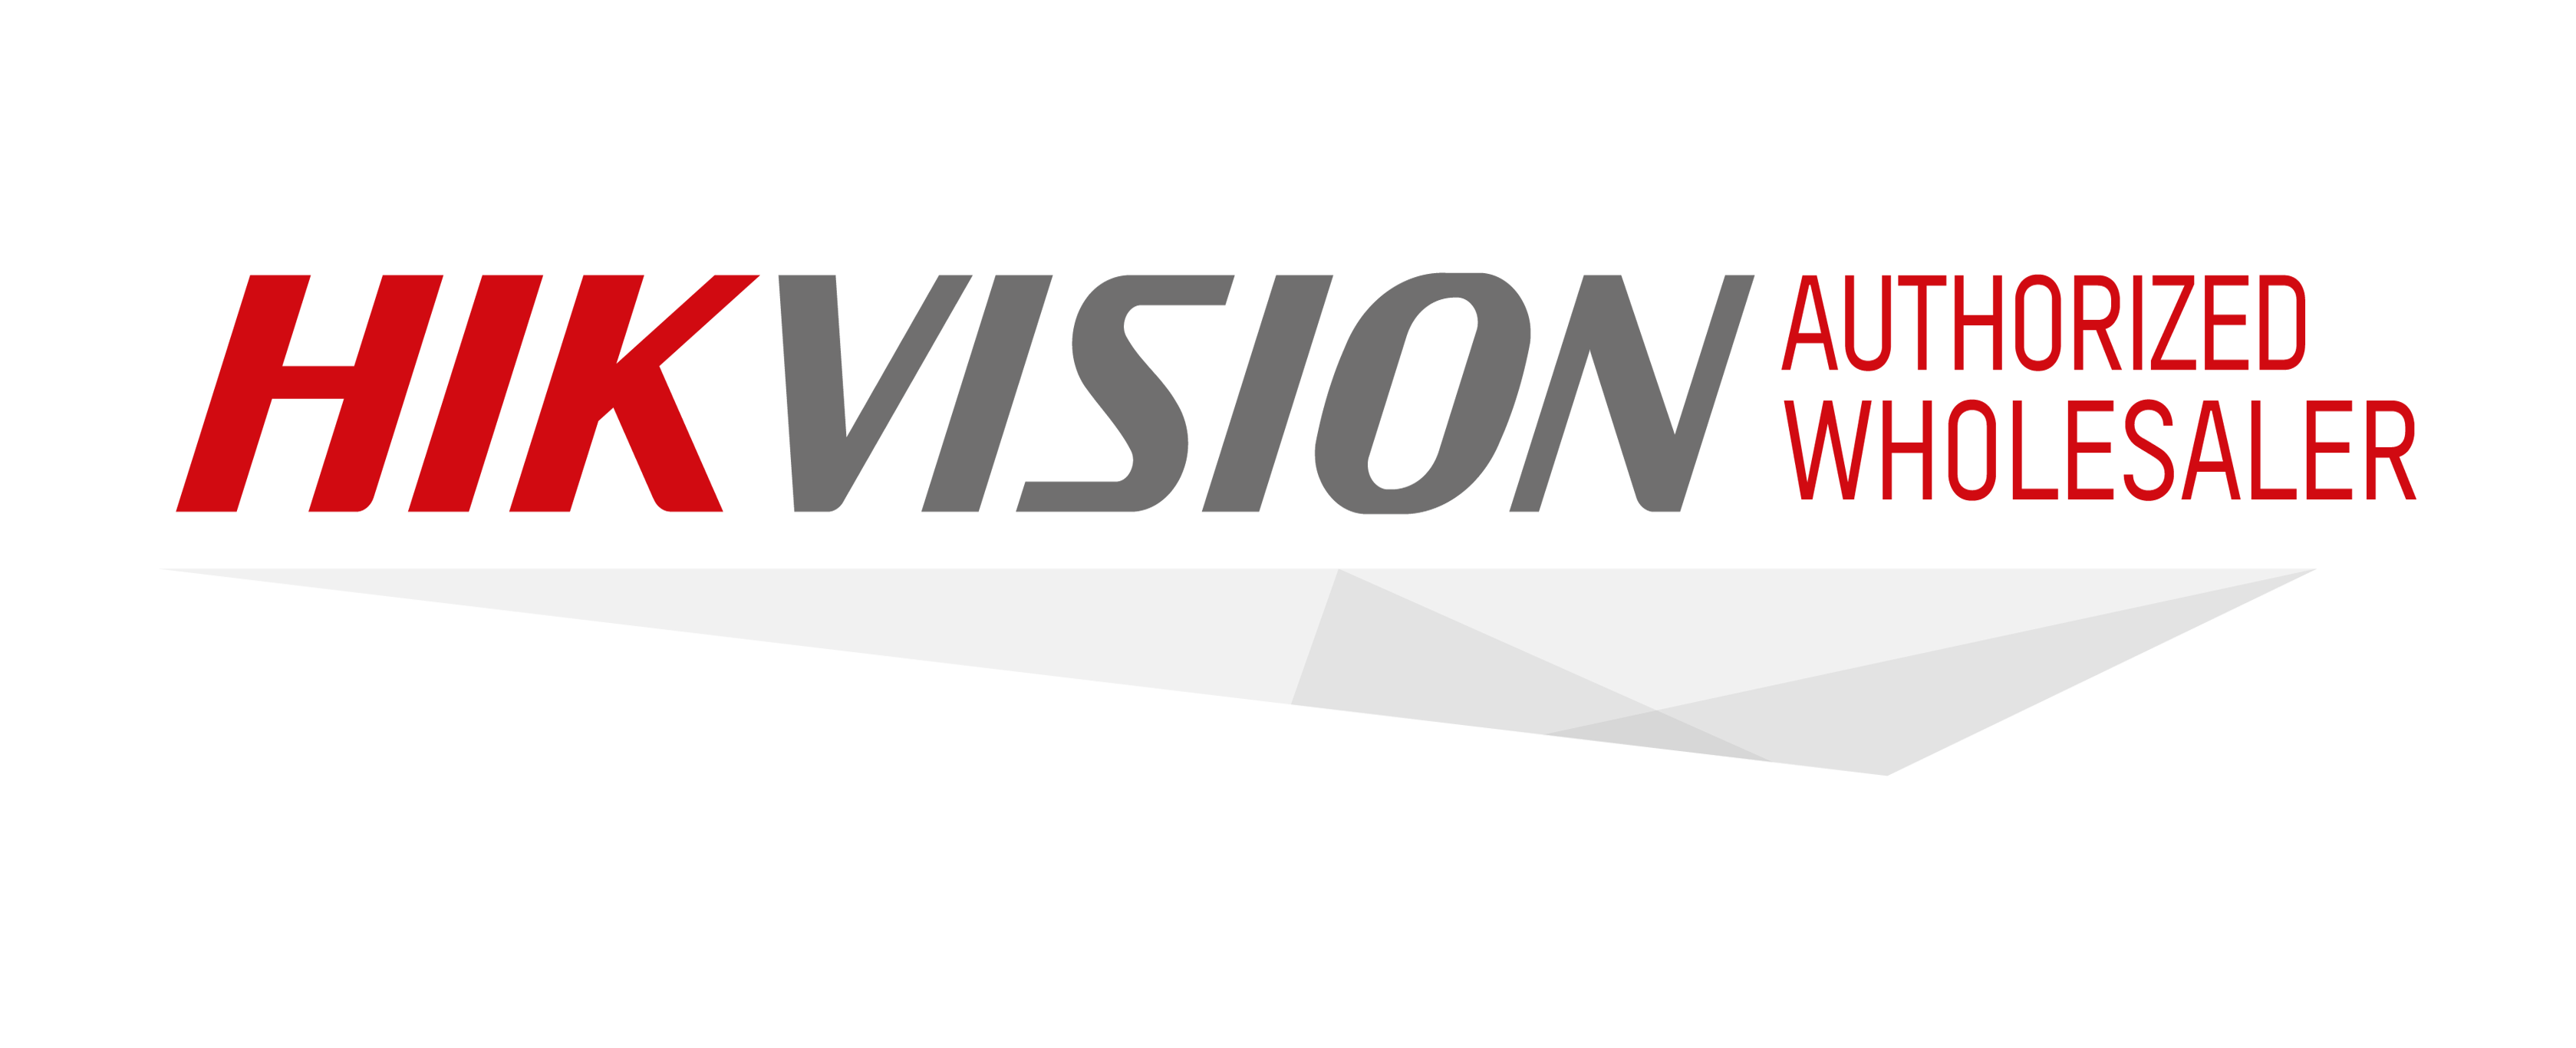 files/hikvision-authorized-wholesaler_copy.png